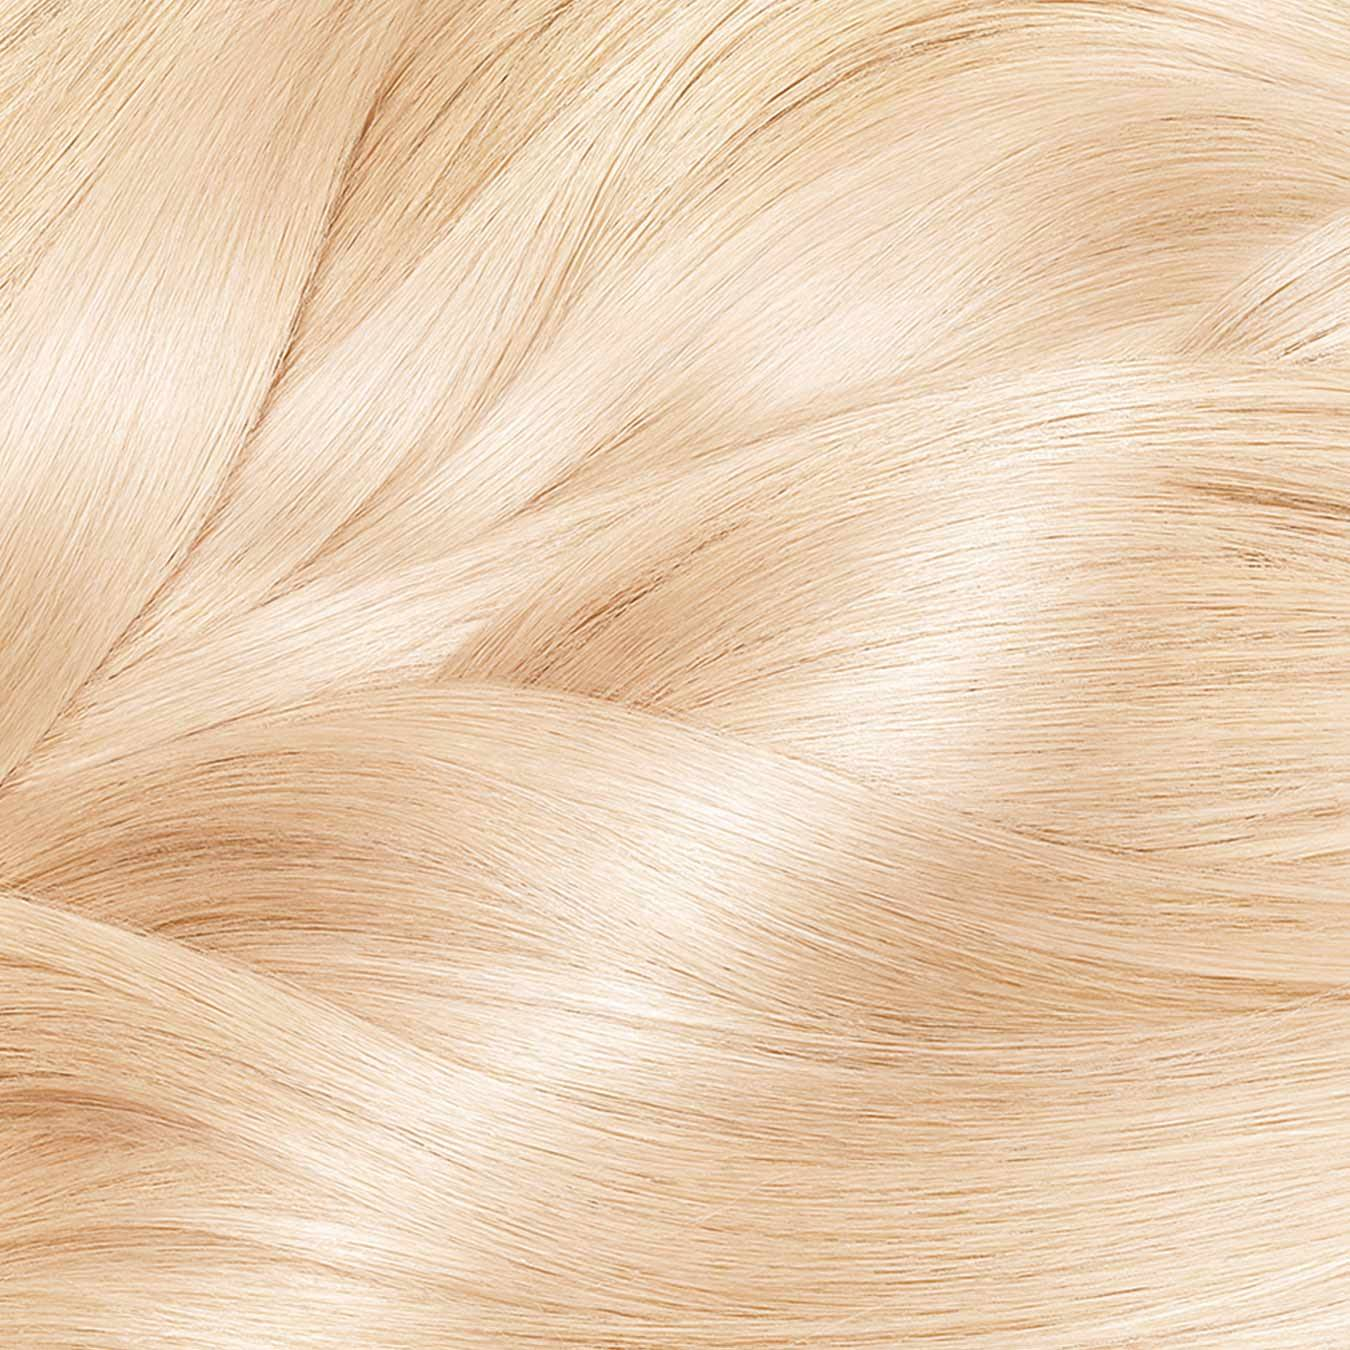 Garnier Color Sensation 11.0 - Extra Light Natural Blonde Permanent Hair Color